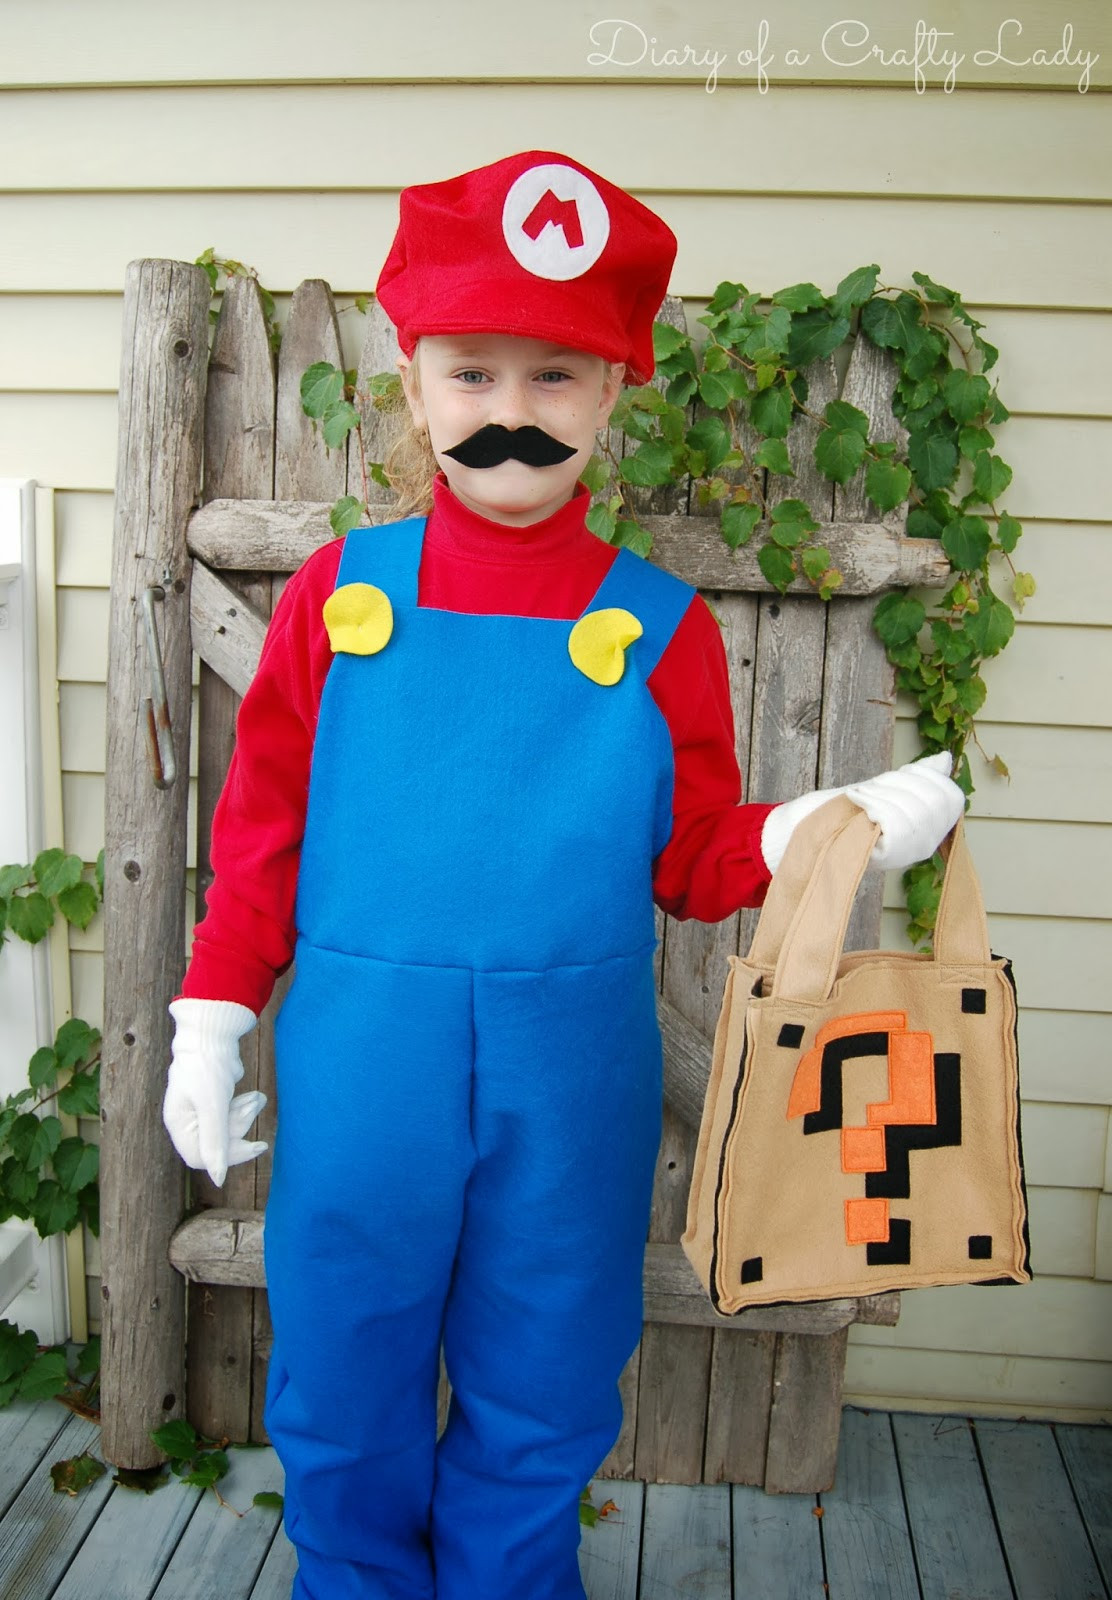 Best ideas about Super Mario Costume DIY . Save or Pin Diary of a Crafty Lady Super Mario Brothers Custom Felt Now.